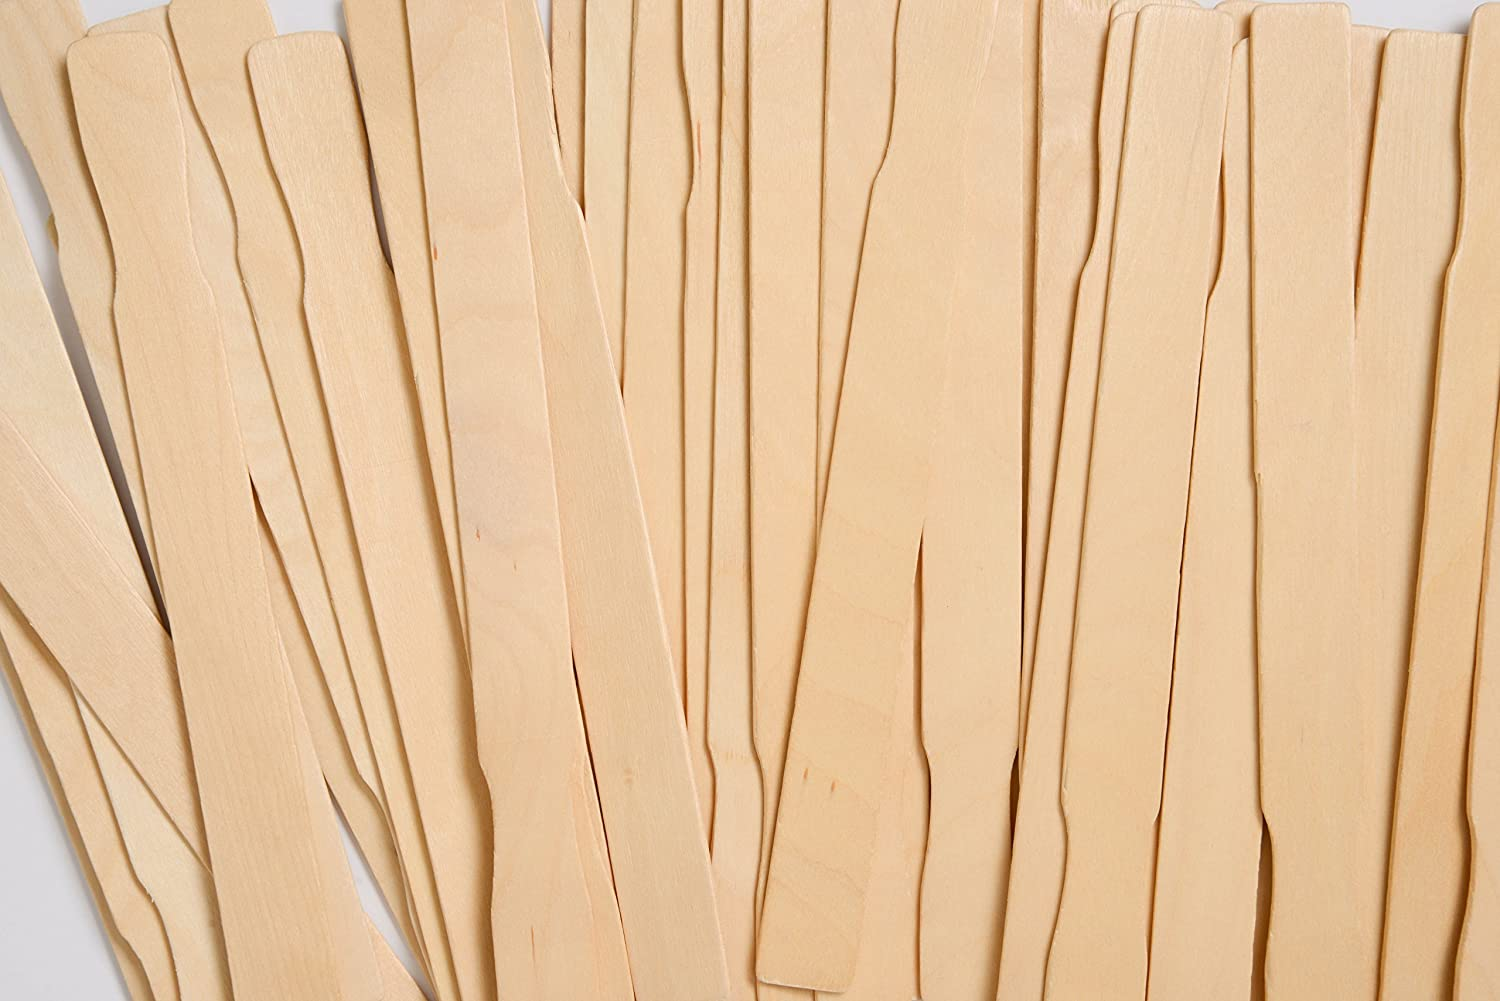 Henry Bukke's Best Wood Paint Sticks Paddles, Finest Quality For Wood Crafts, MADE IN USA - 9 Inch Length, Box of 100 Henry Bukke' s Best FBA_WPS9